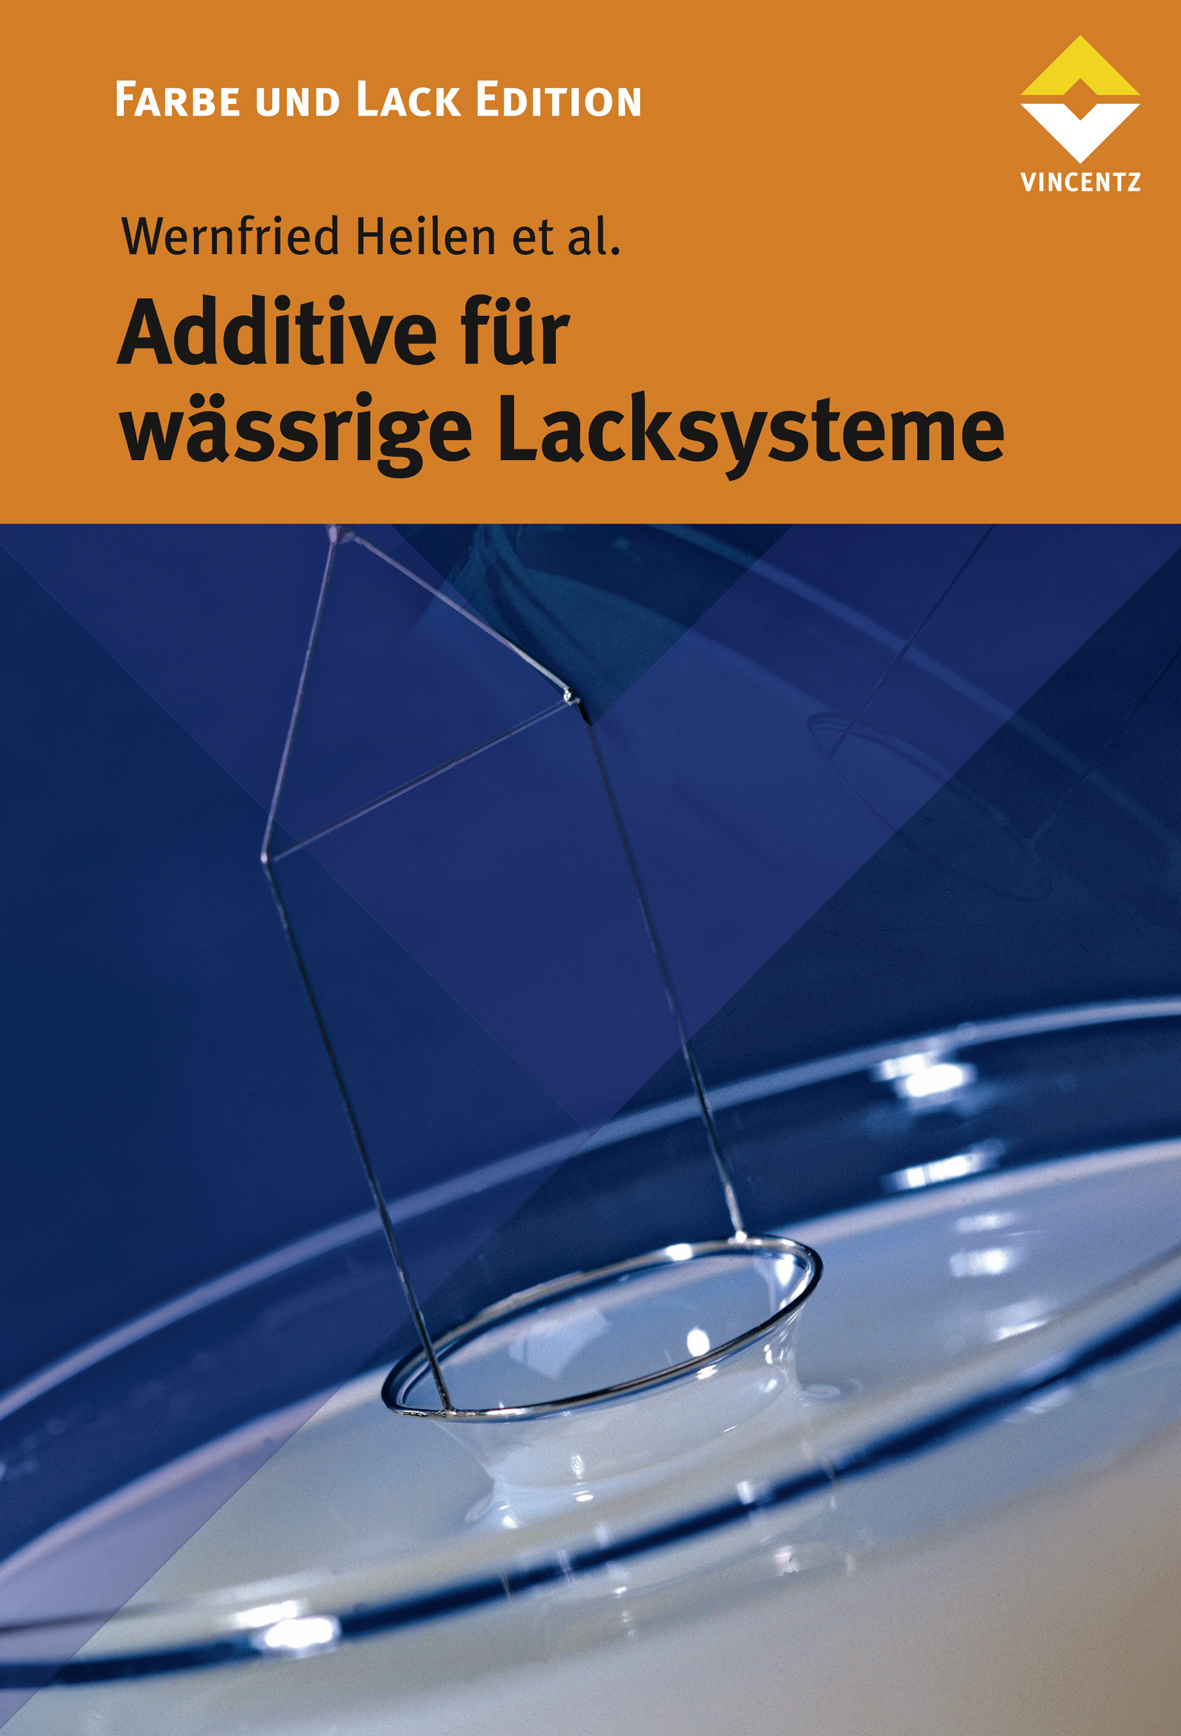 Additive-fuer-waessrige-Lacksysteme-Wernfried-Heilen